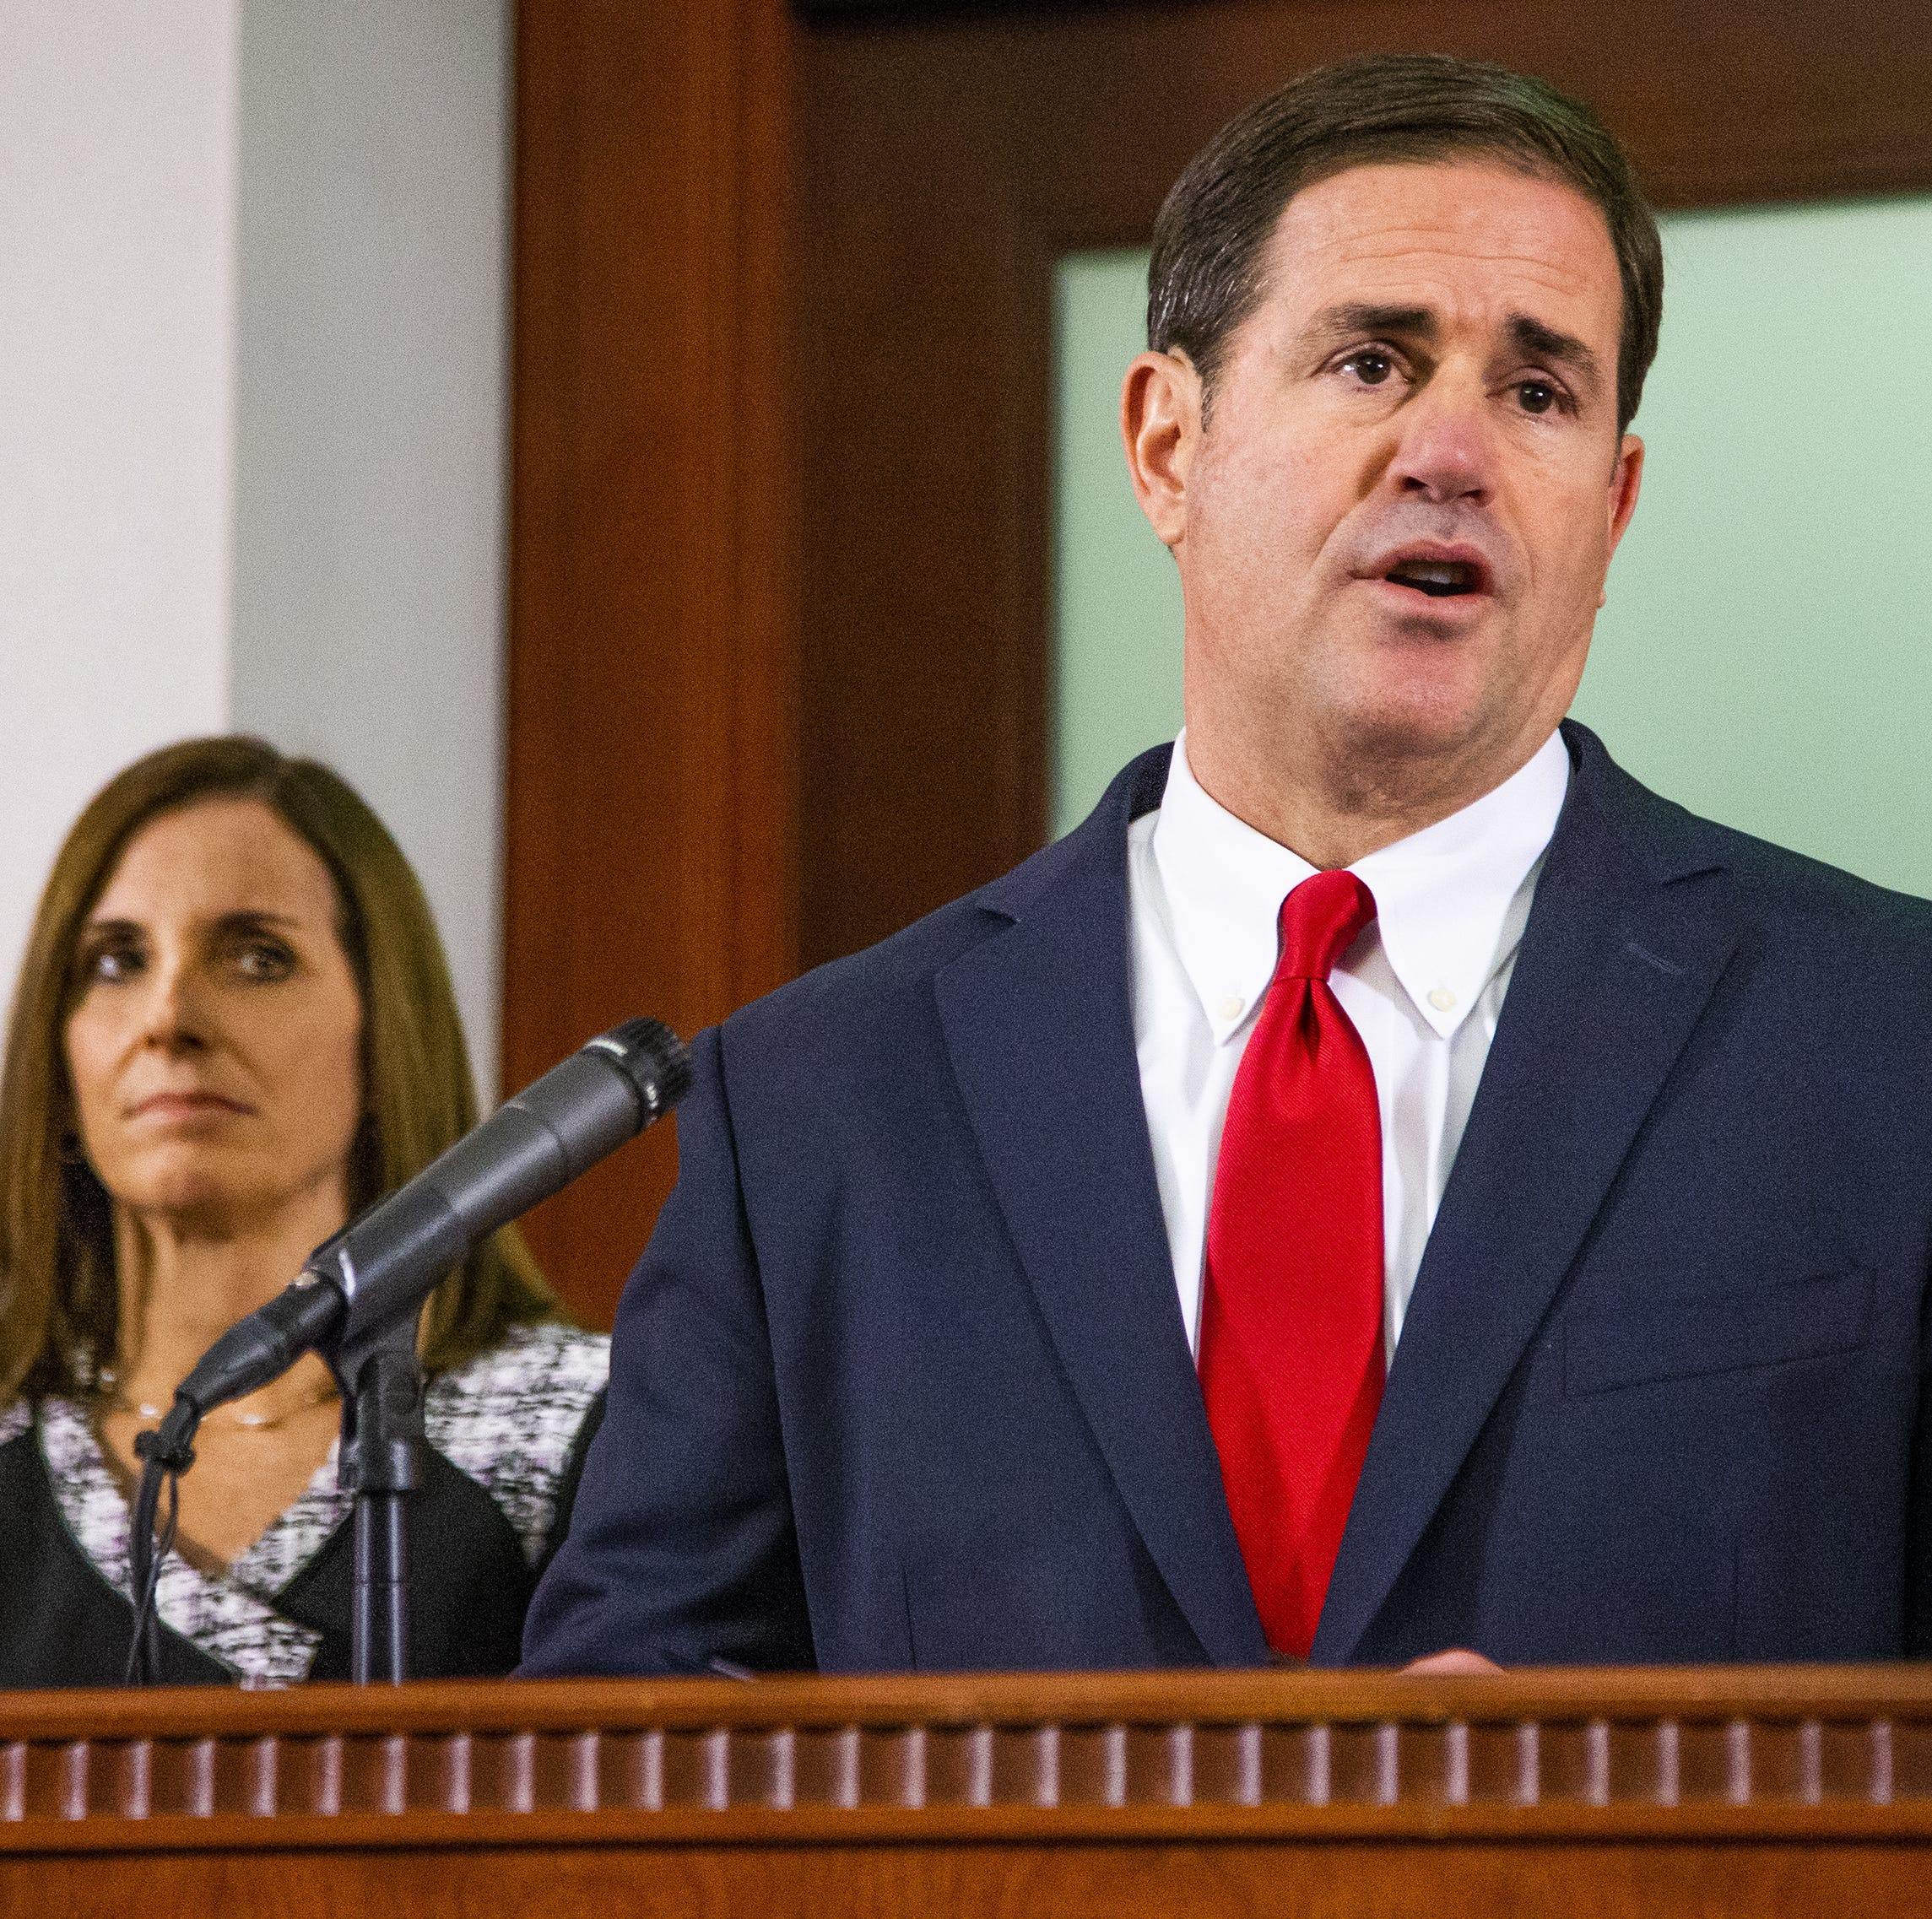 Partisan divide emerges after Gov. Doug Ducey's appointment of Martha McSally to Senate